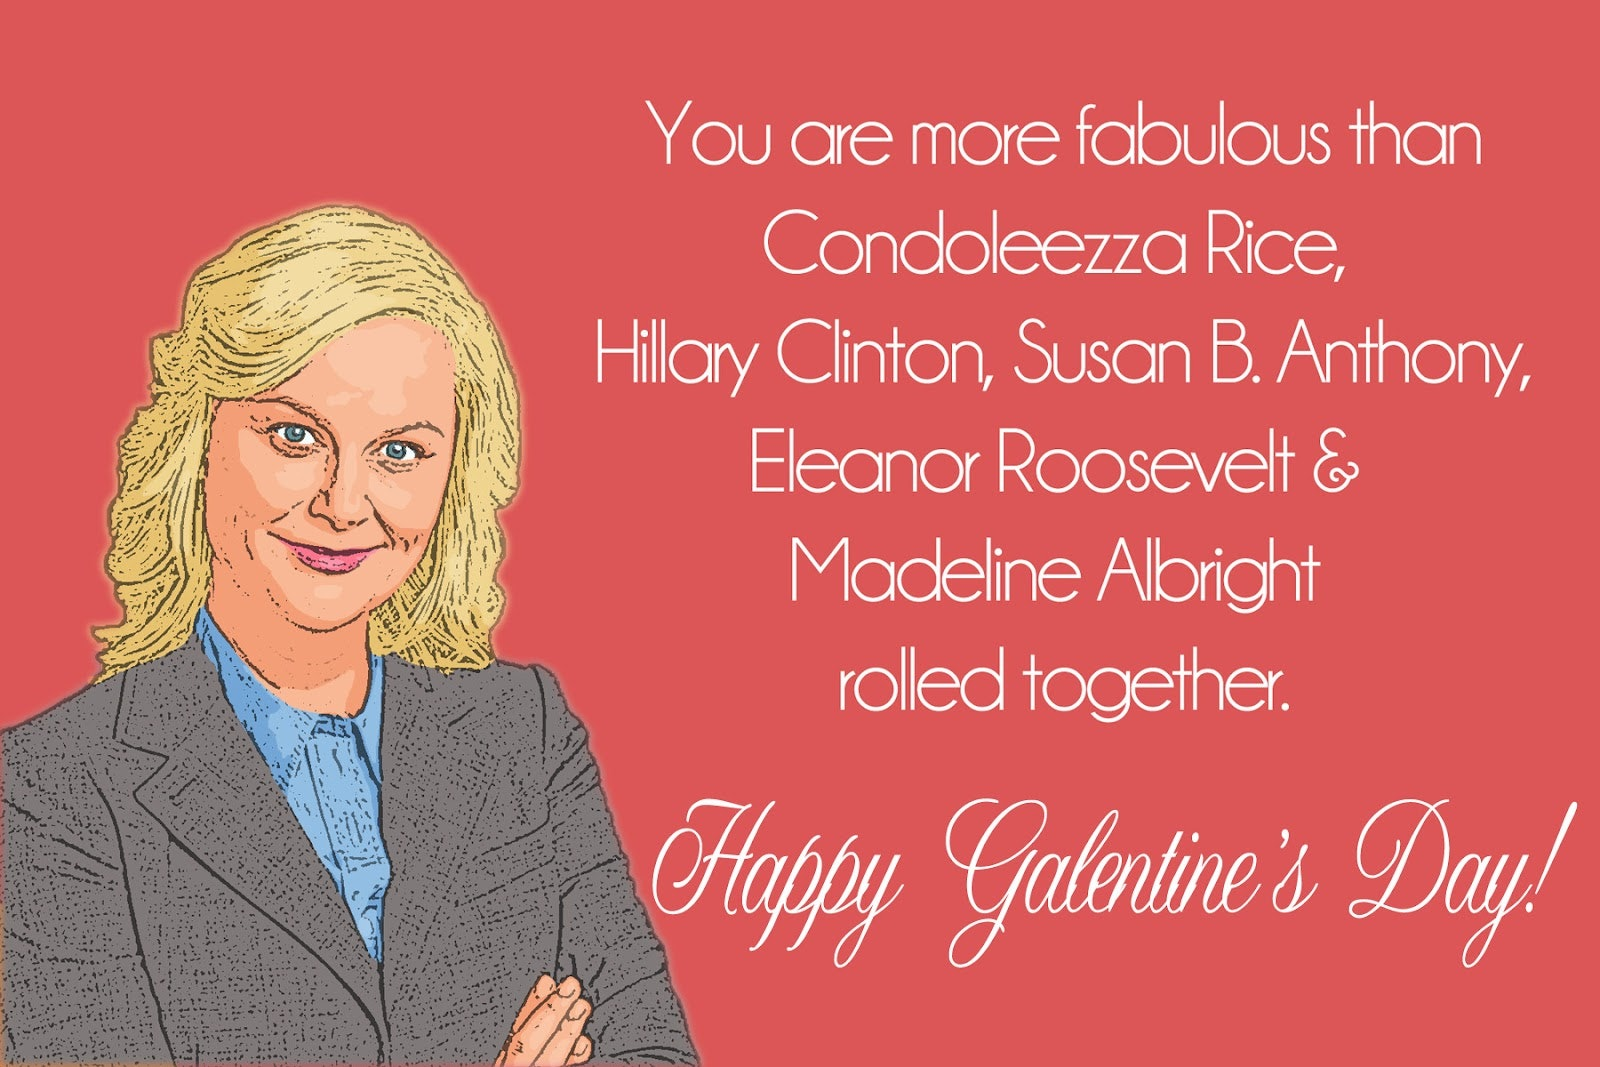 Galentines Day Quotes 13 Galentine's Day Memes That Celebrate The Love You Have For Your  Galentines Day Quotes